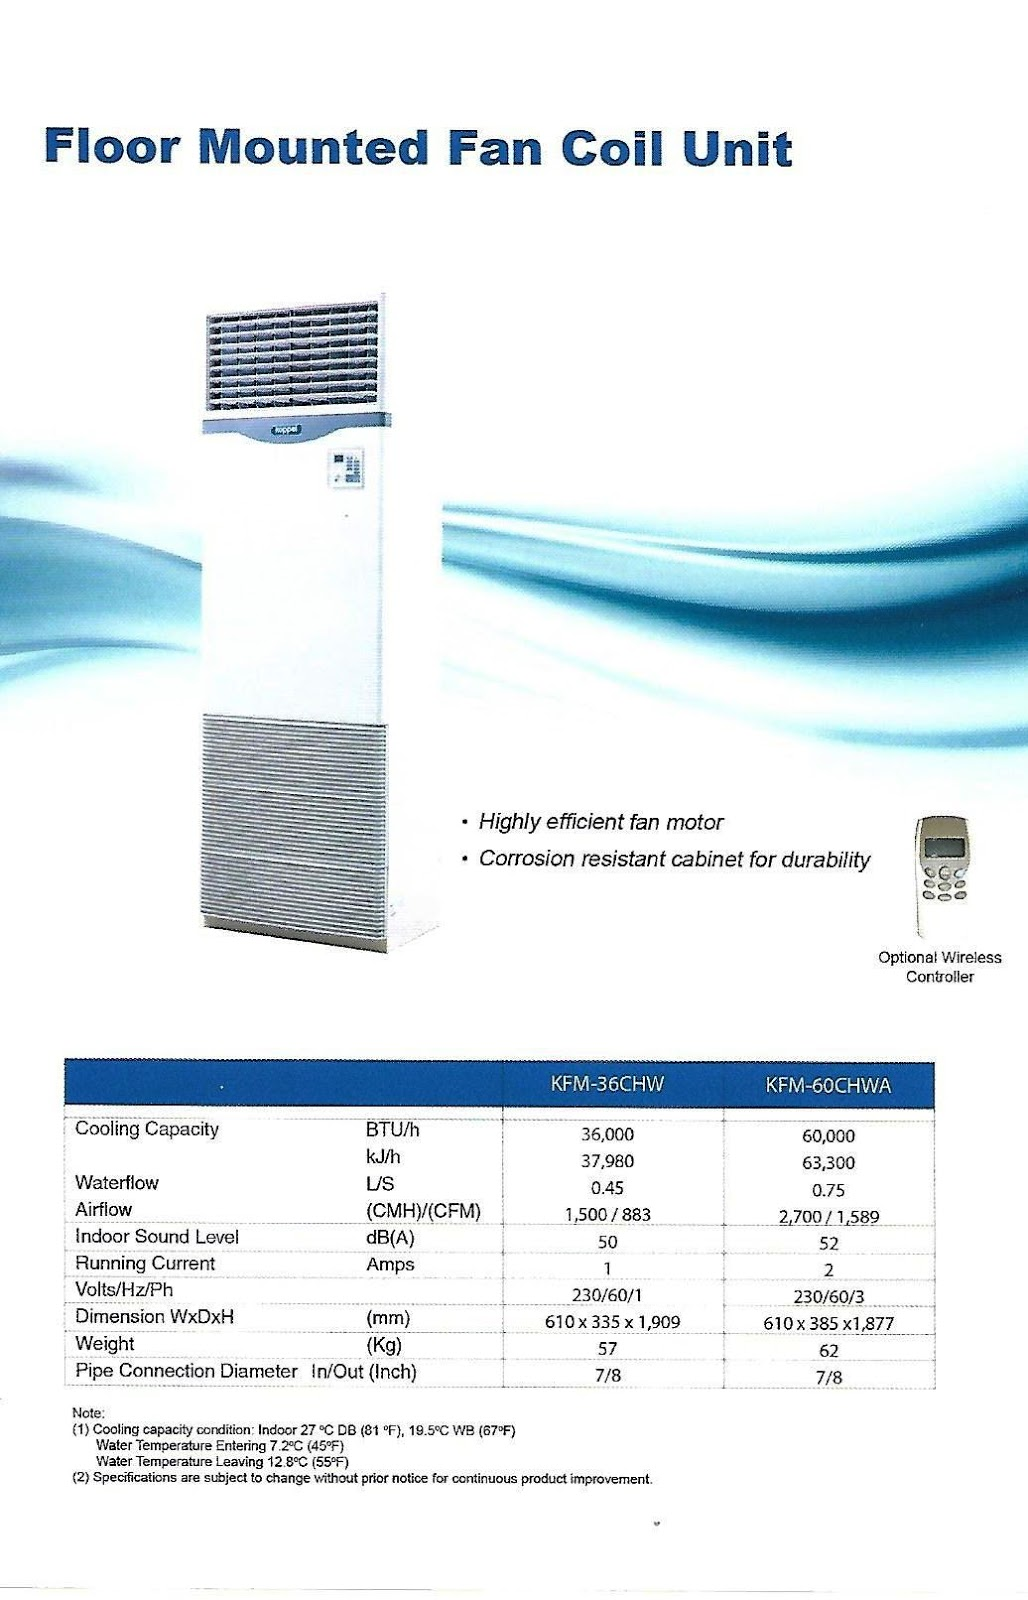 Maximax Systems: KOPPEL FLOOR CHILLED WATER FAN COIL UNIT